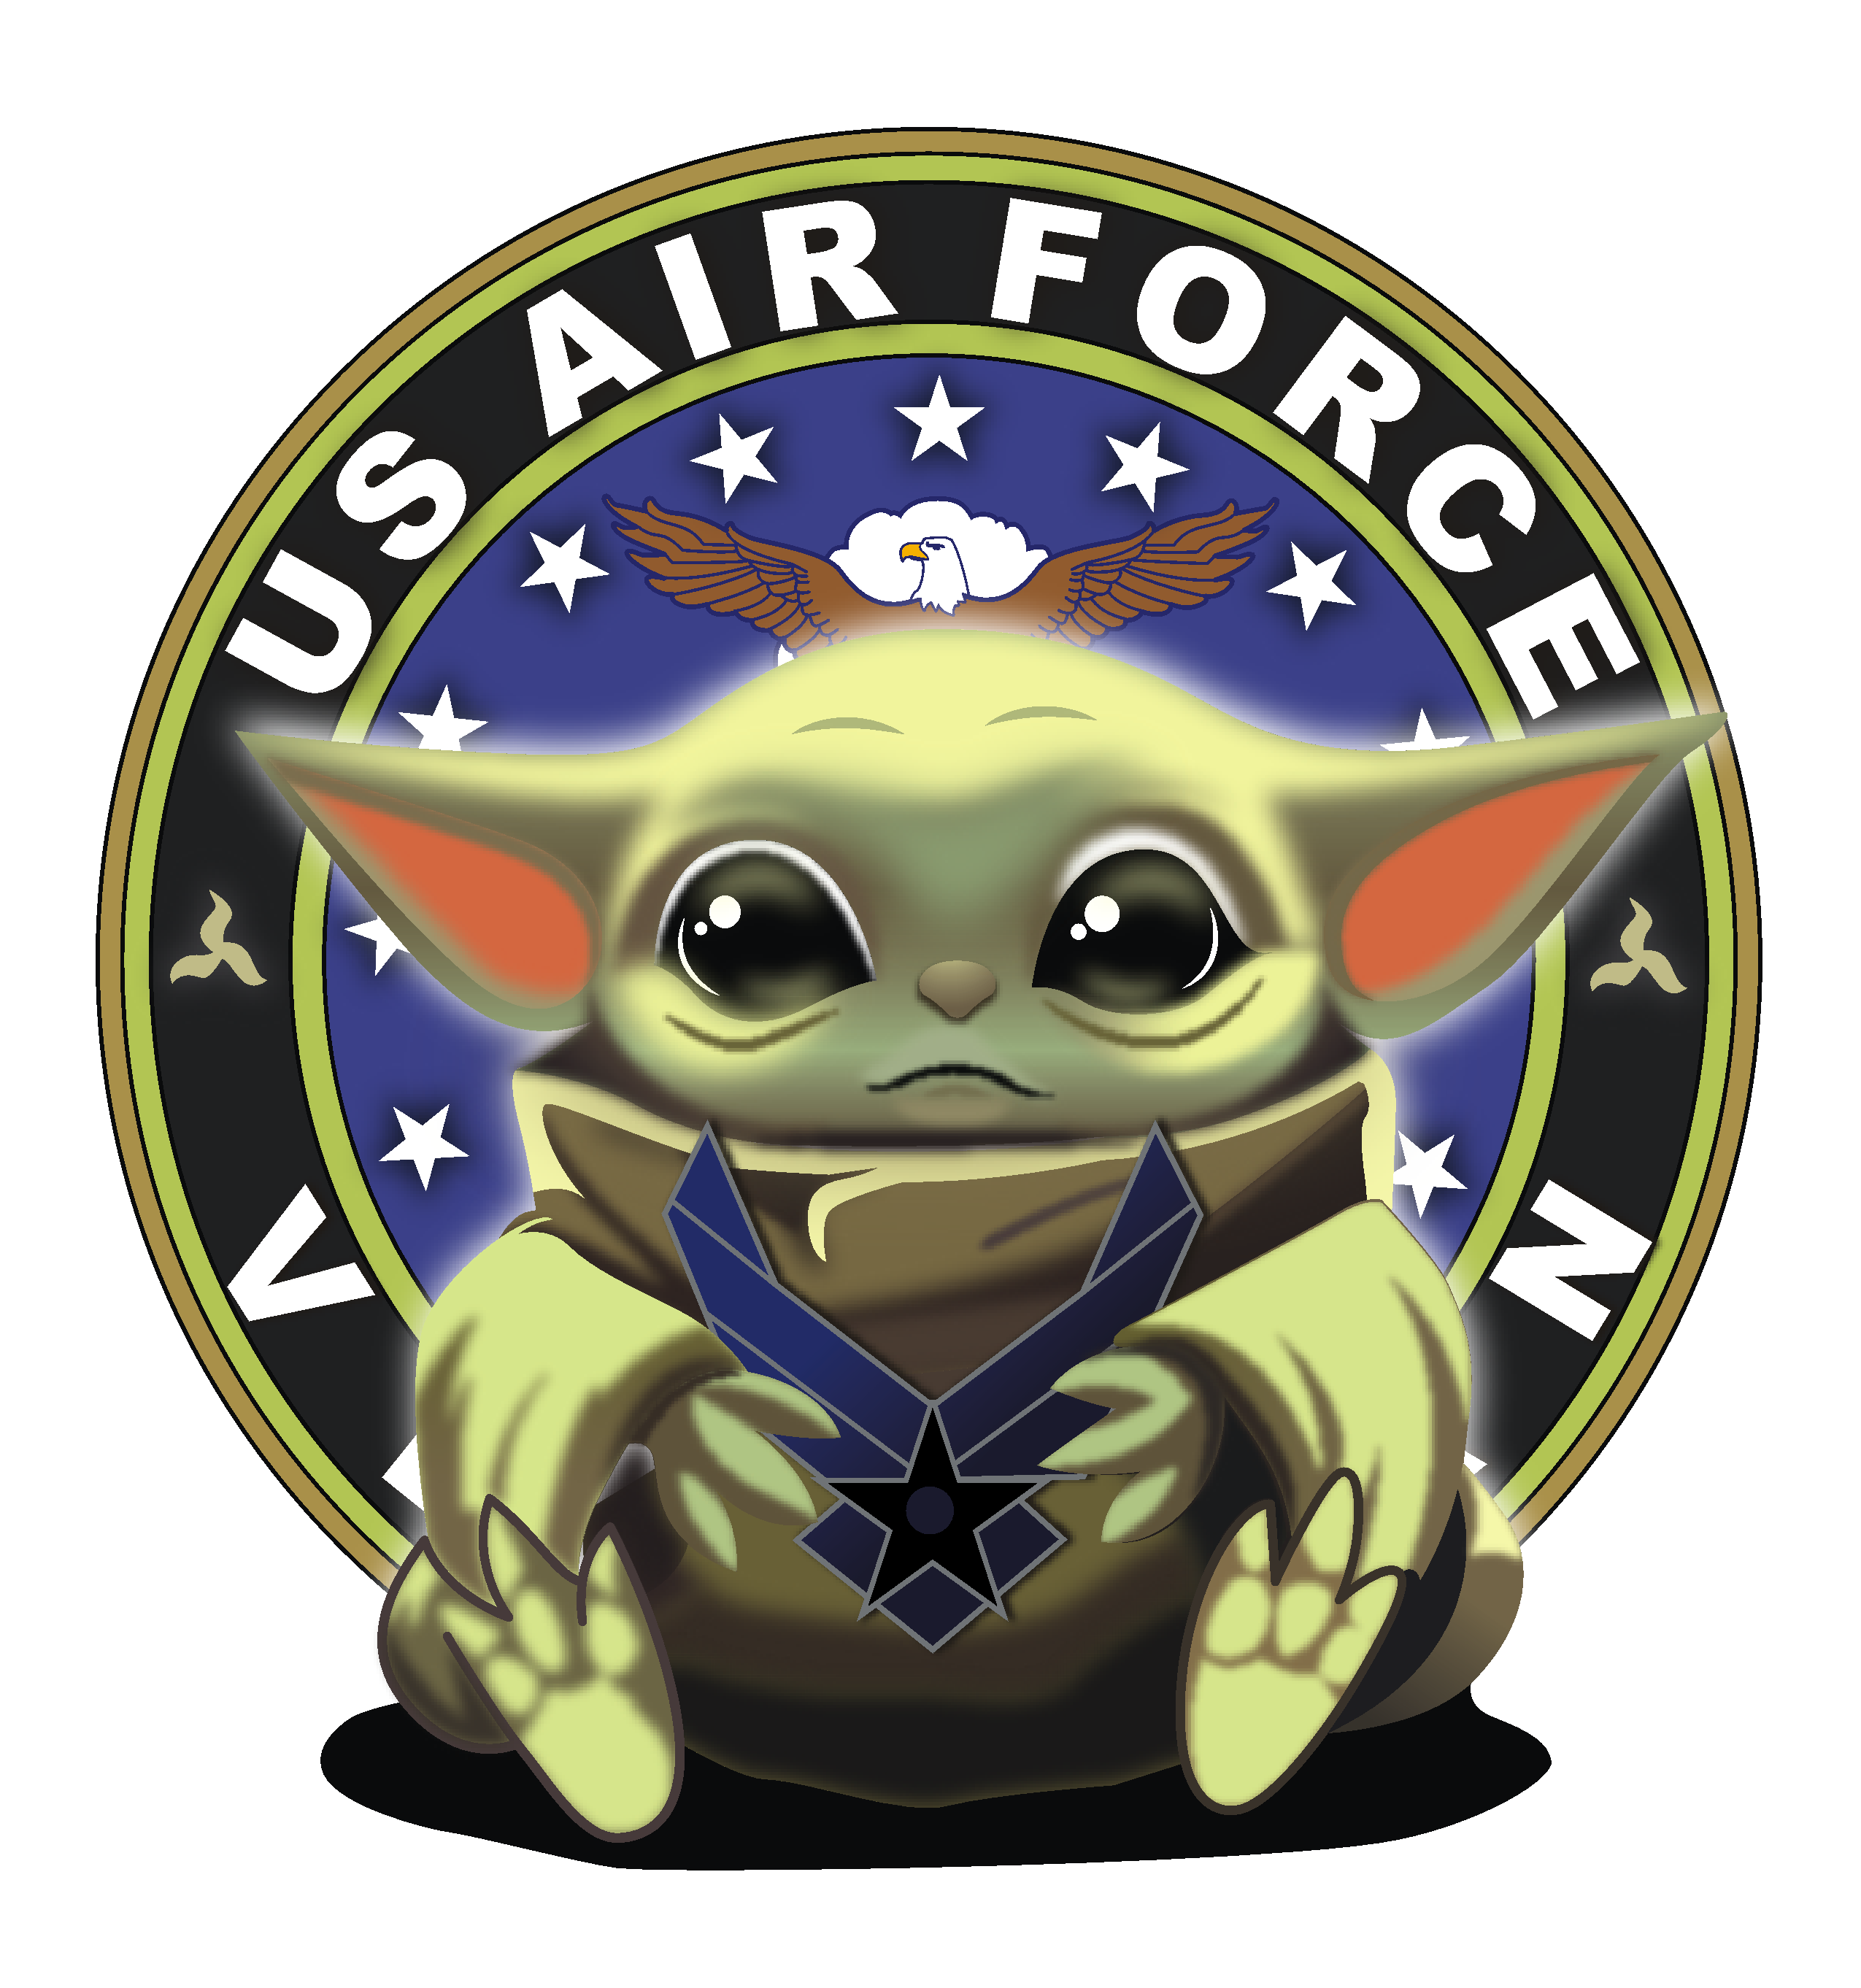 Baby Yoda Air Force Army Marine Corp Navy United States American Merica Red White And Blue Support Our Troops Png Yoda Wallpaper Star Wars Coloring Sheet Star Wars Sewing